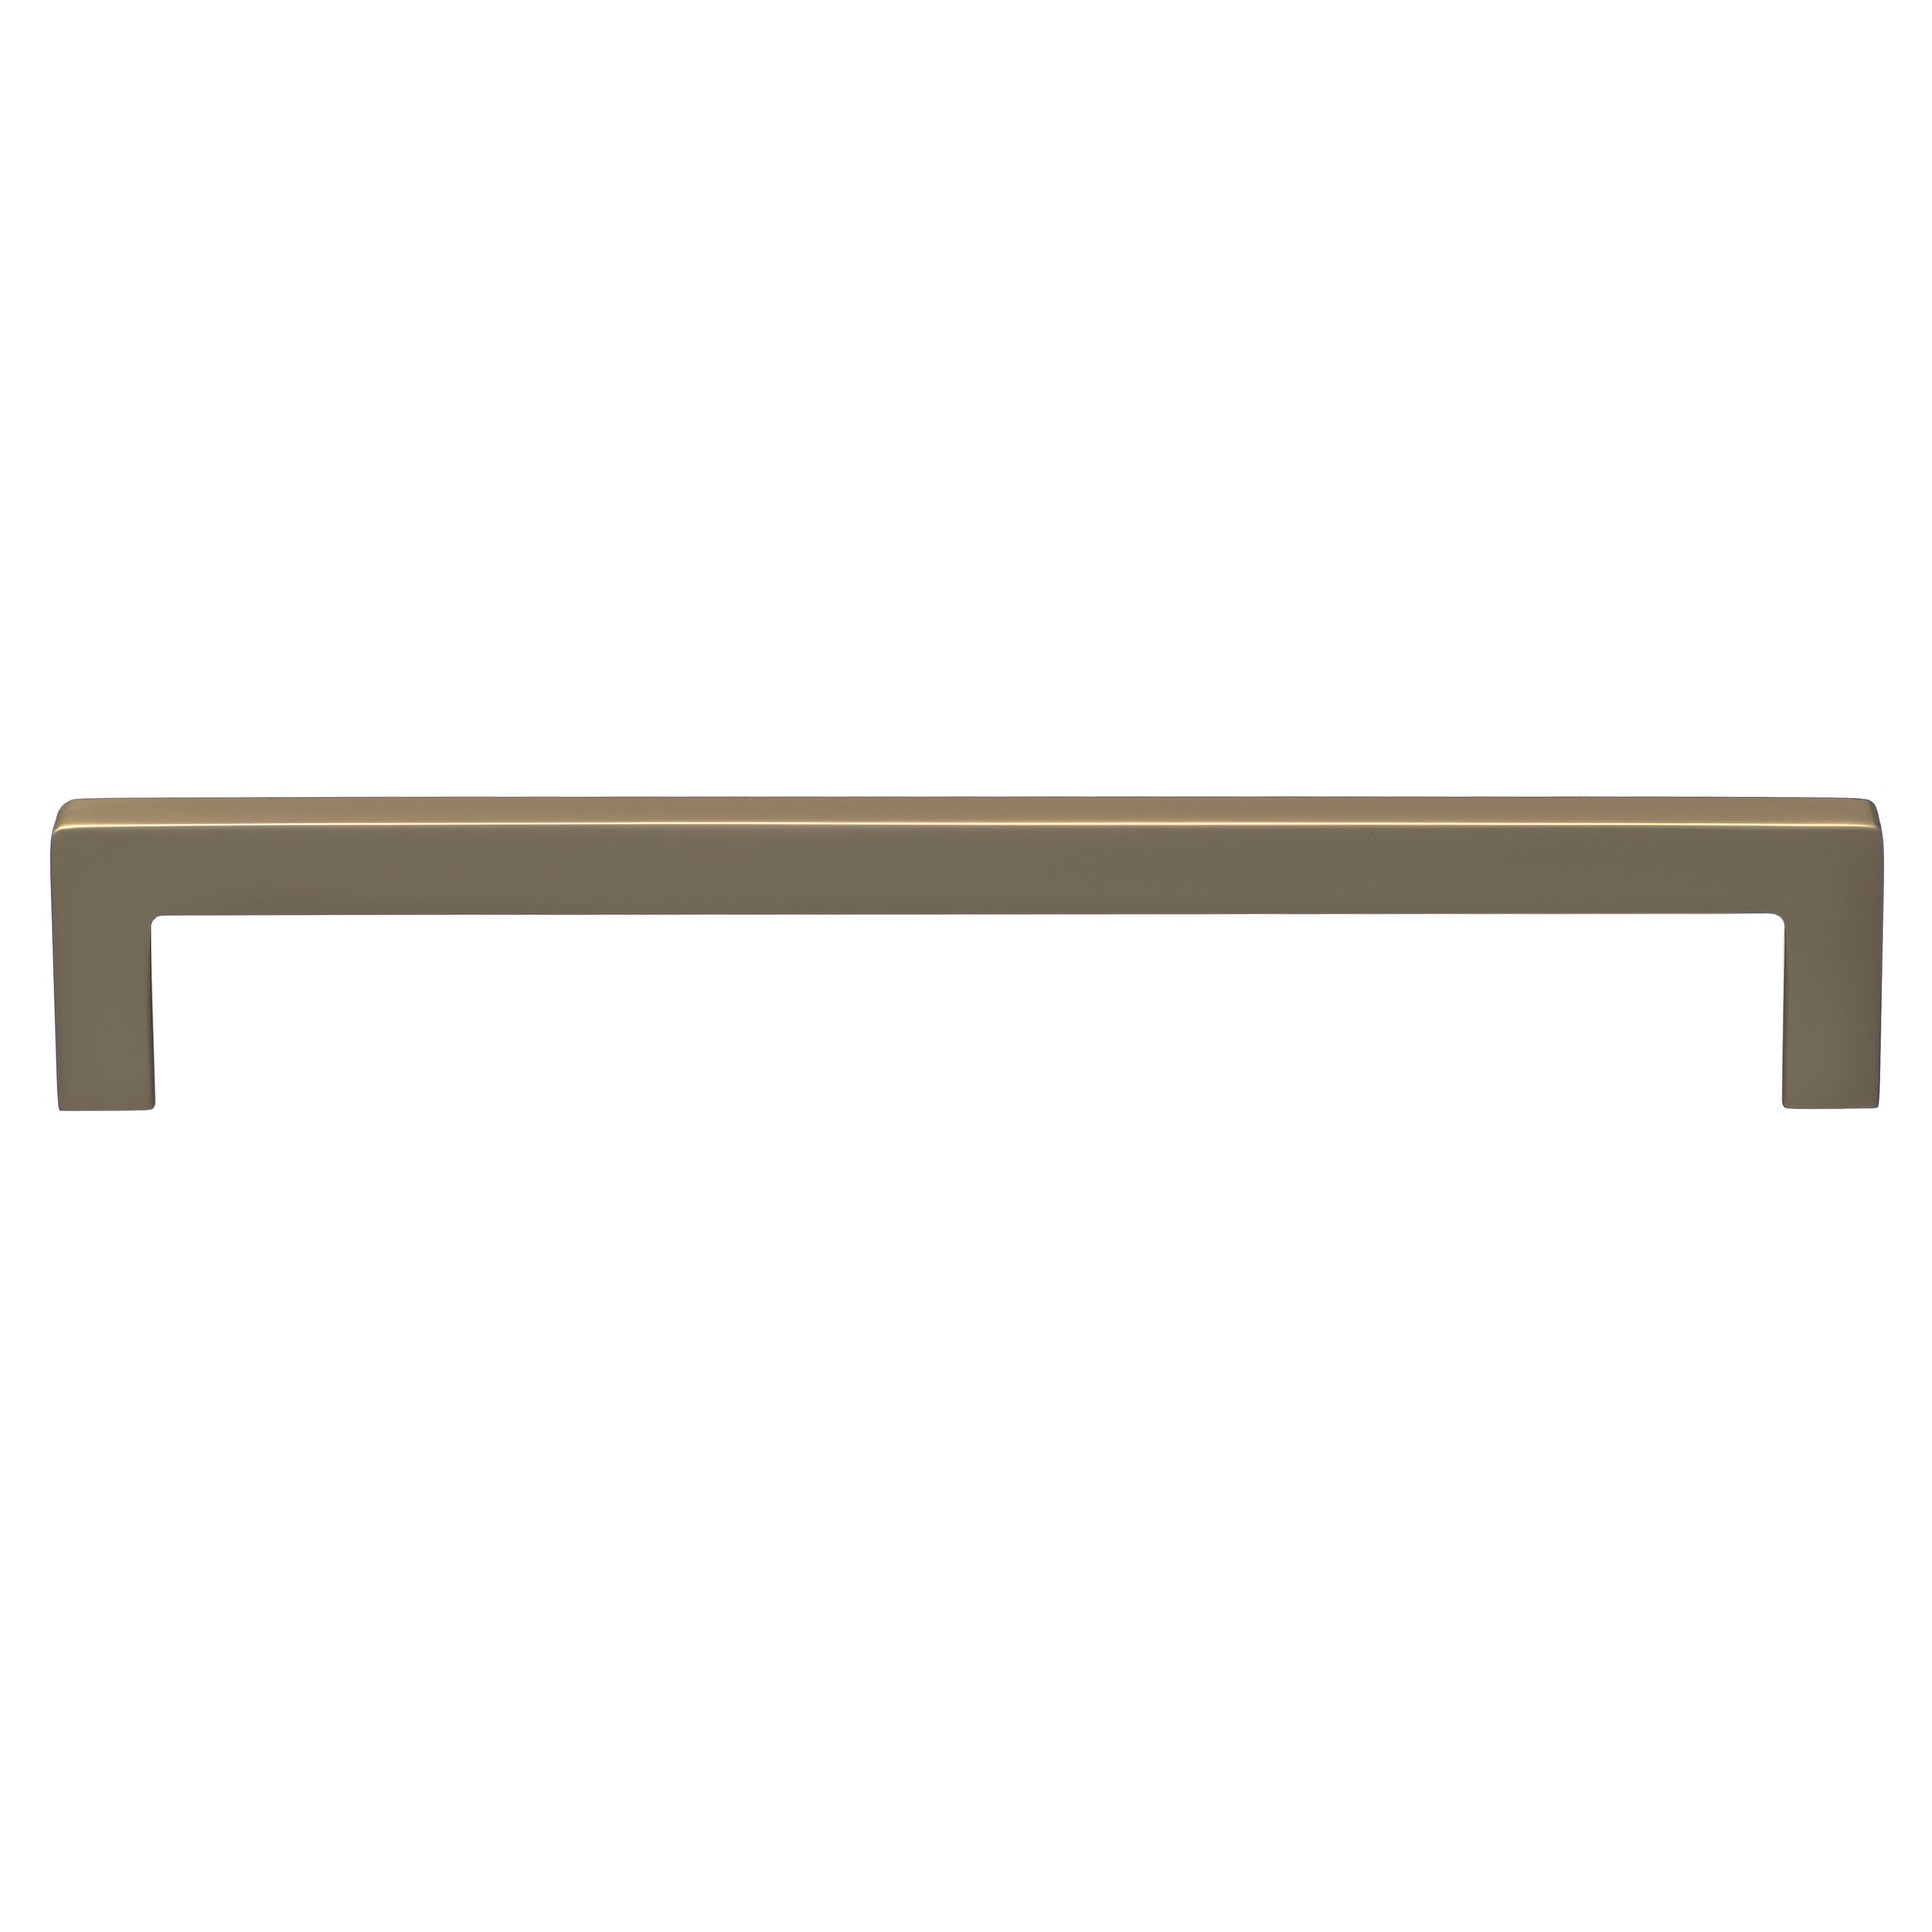 Square Cabinet Pull Brushed Nickel 3.75 in By Strictly Hardware